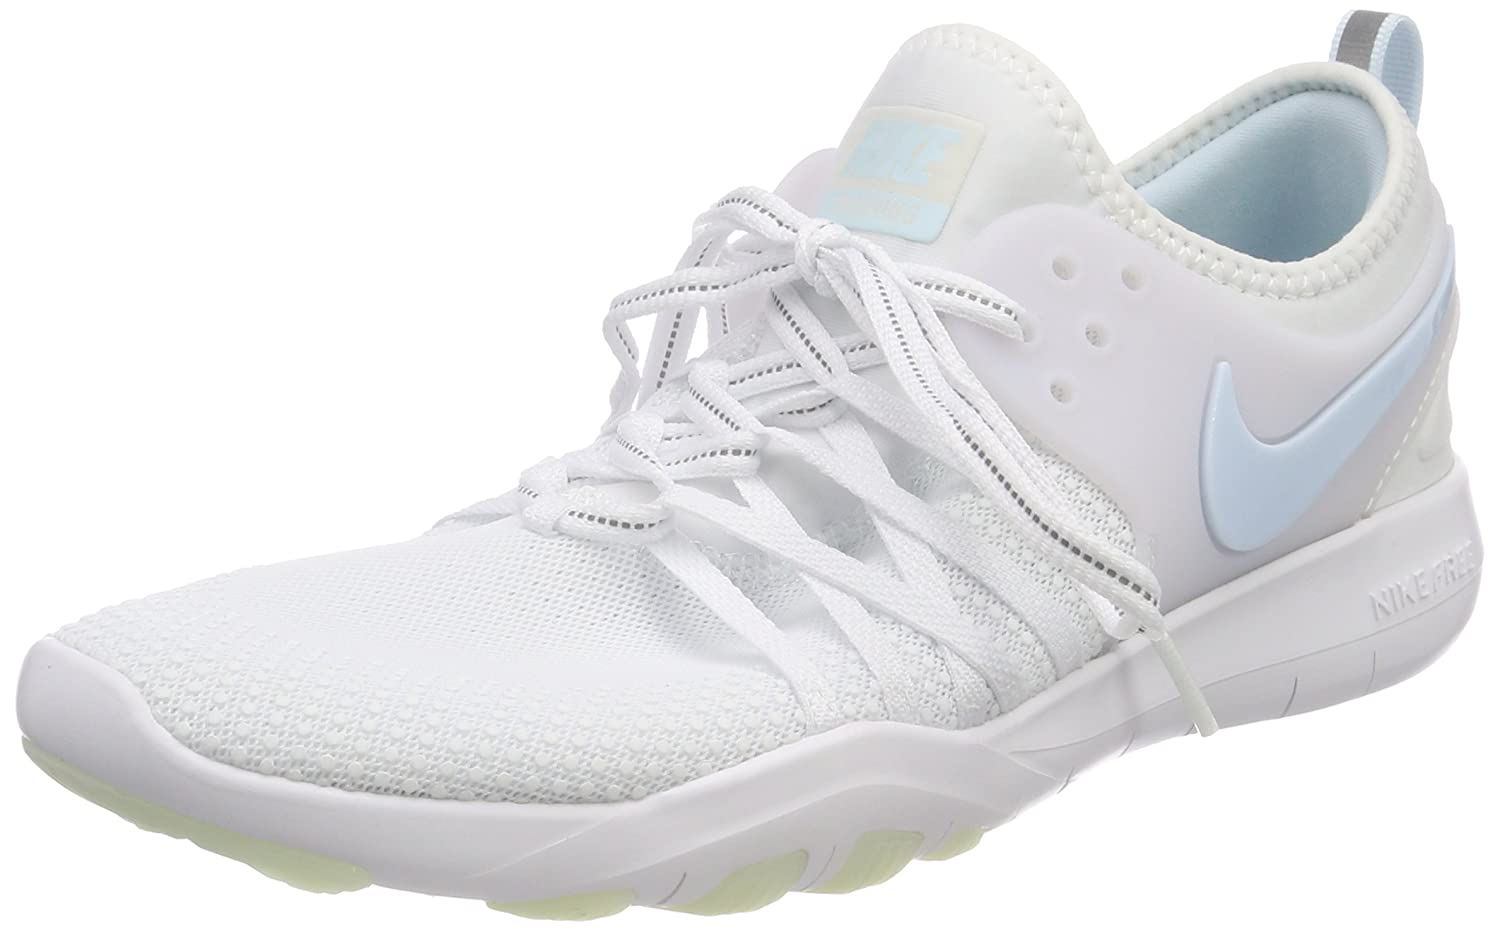 NIKE Free Tr 7 Womens Cross Training Shoes B06WP749J4 9 B(M) US|White/Glacier Blue